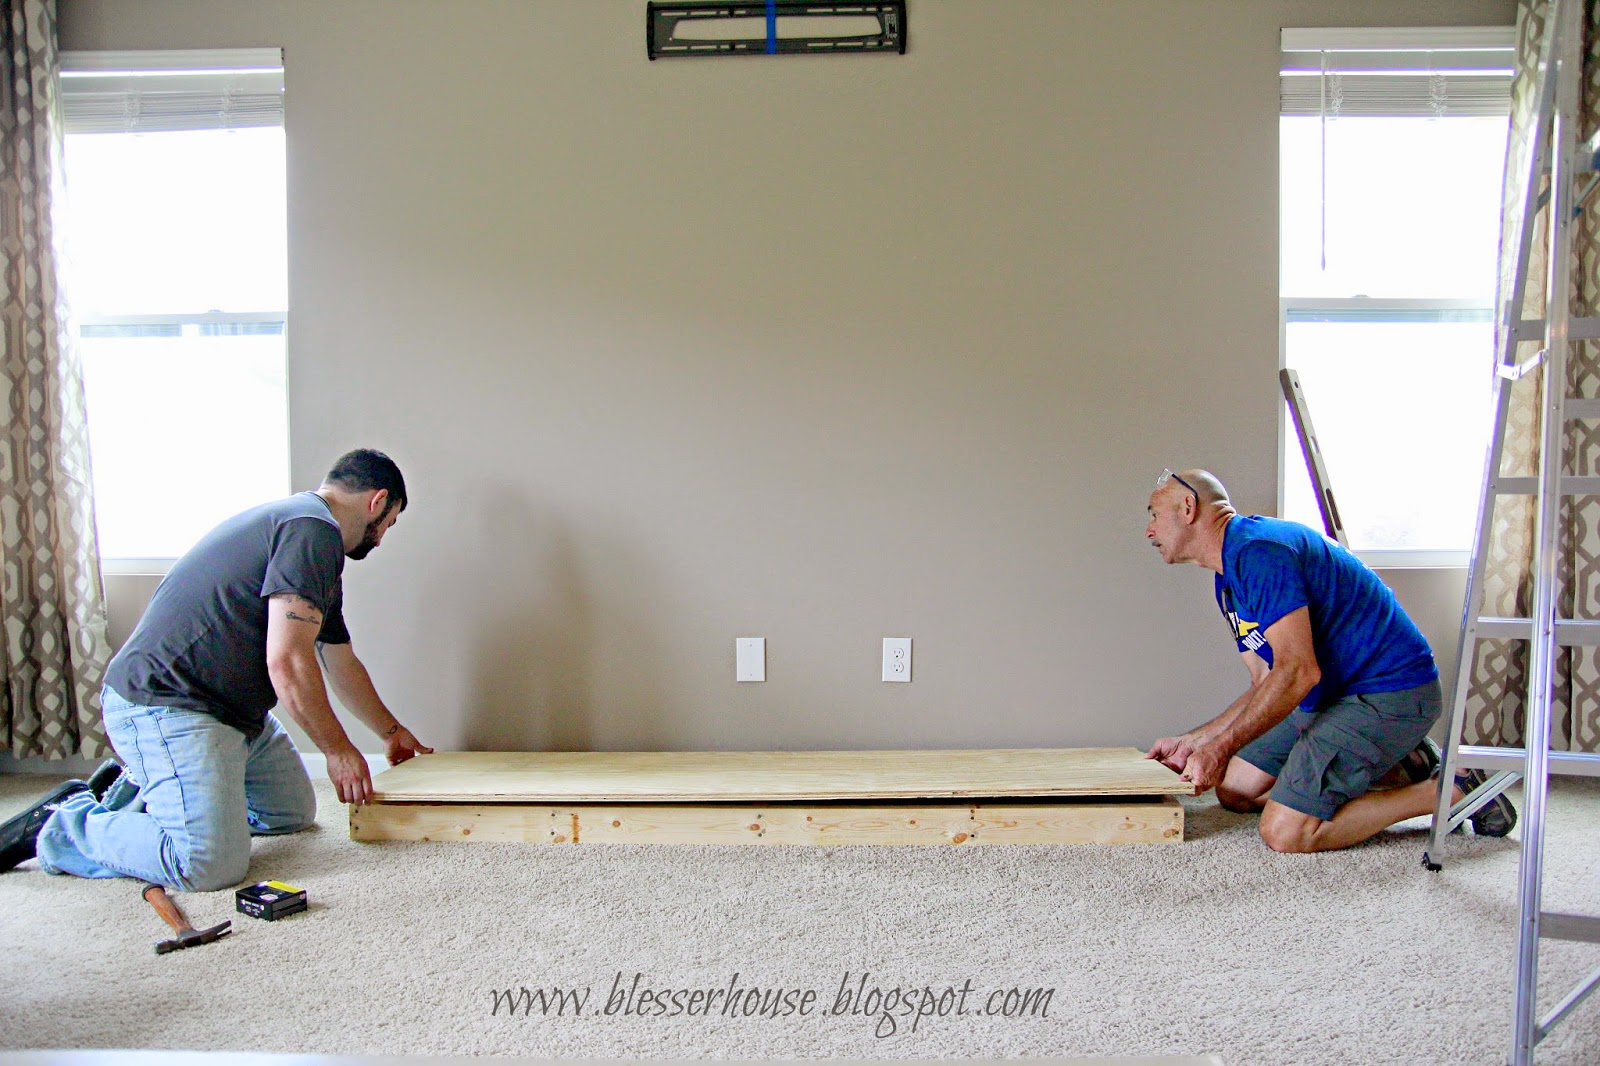 Remodelaholic how to build a faux fireplace and mantel building the hearth base for faux fireplace blesser house featured on remodelaholic solutioingenieria Gallery